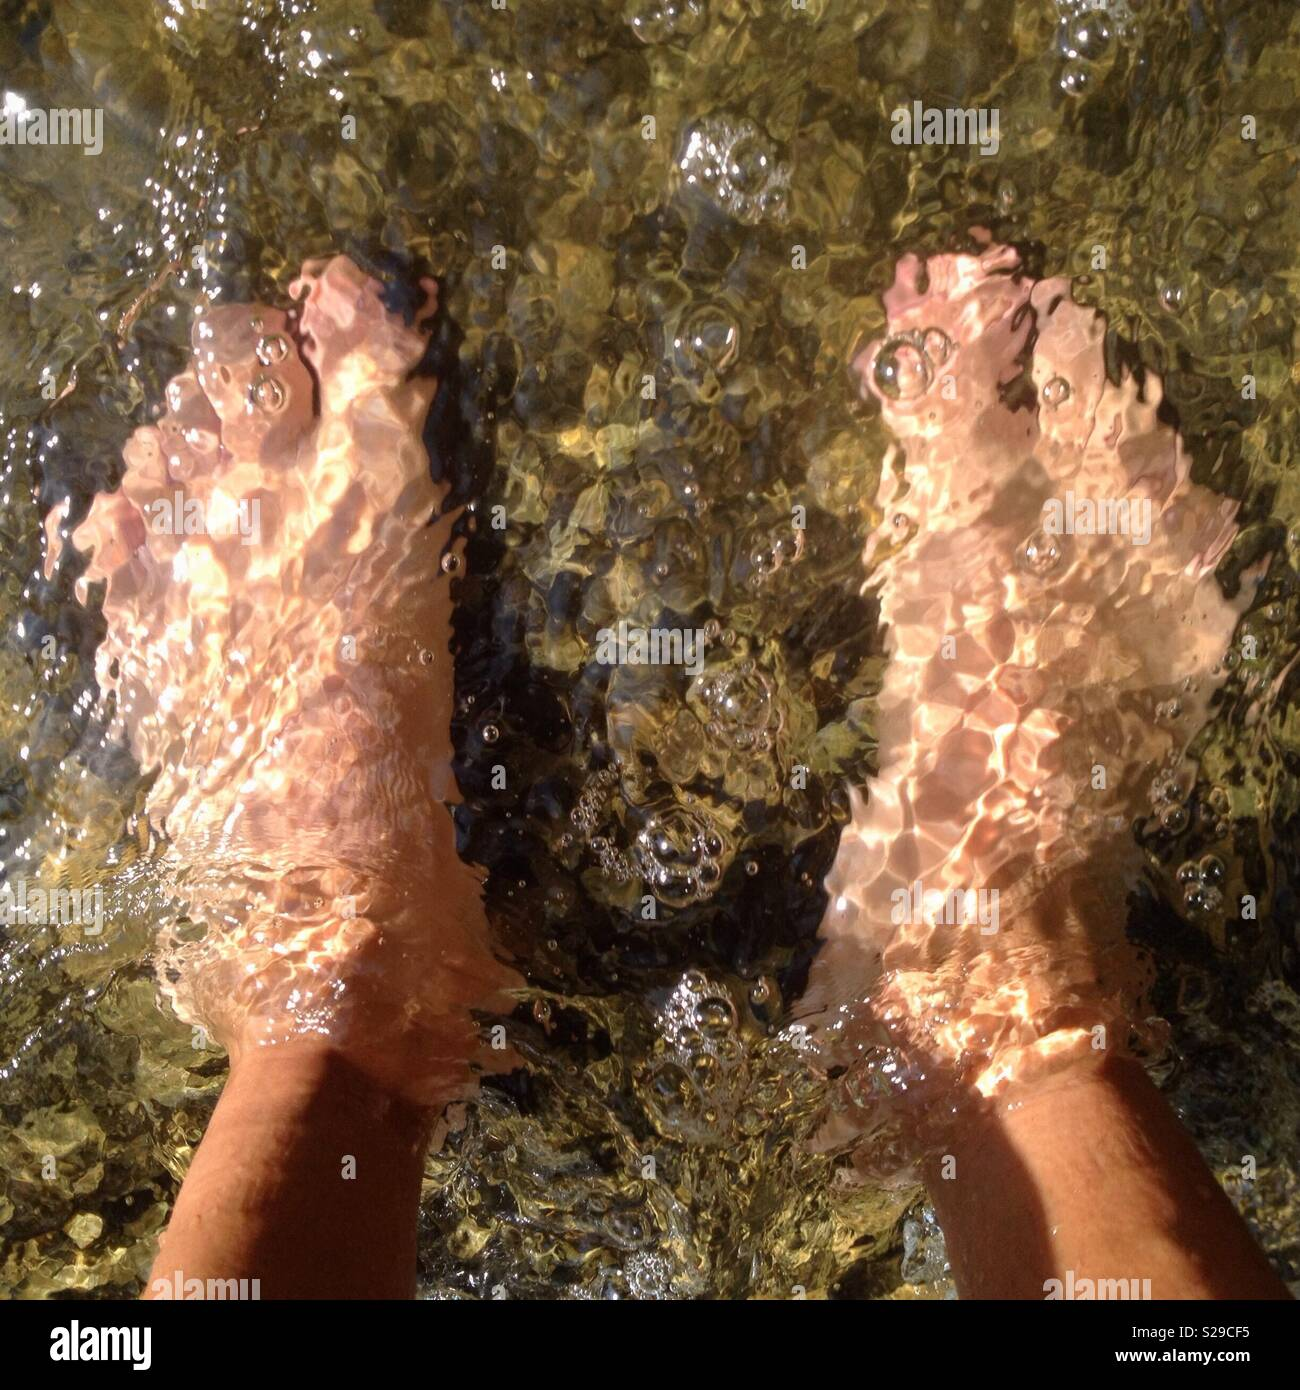 Heat wave, cooling feet in the water - Stock Image